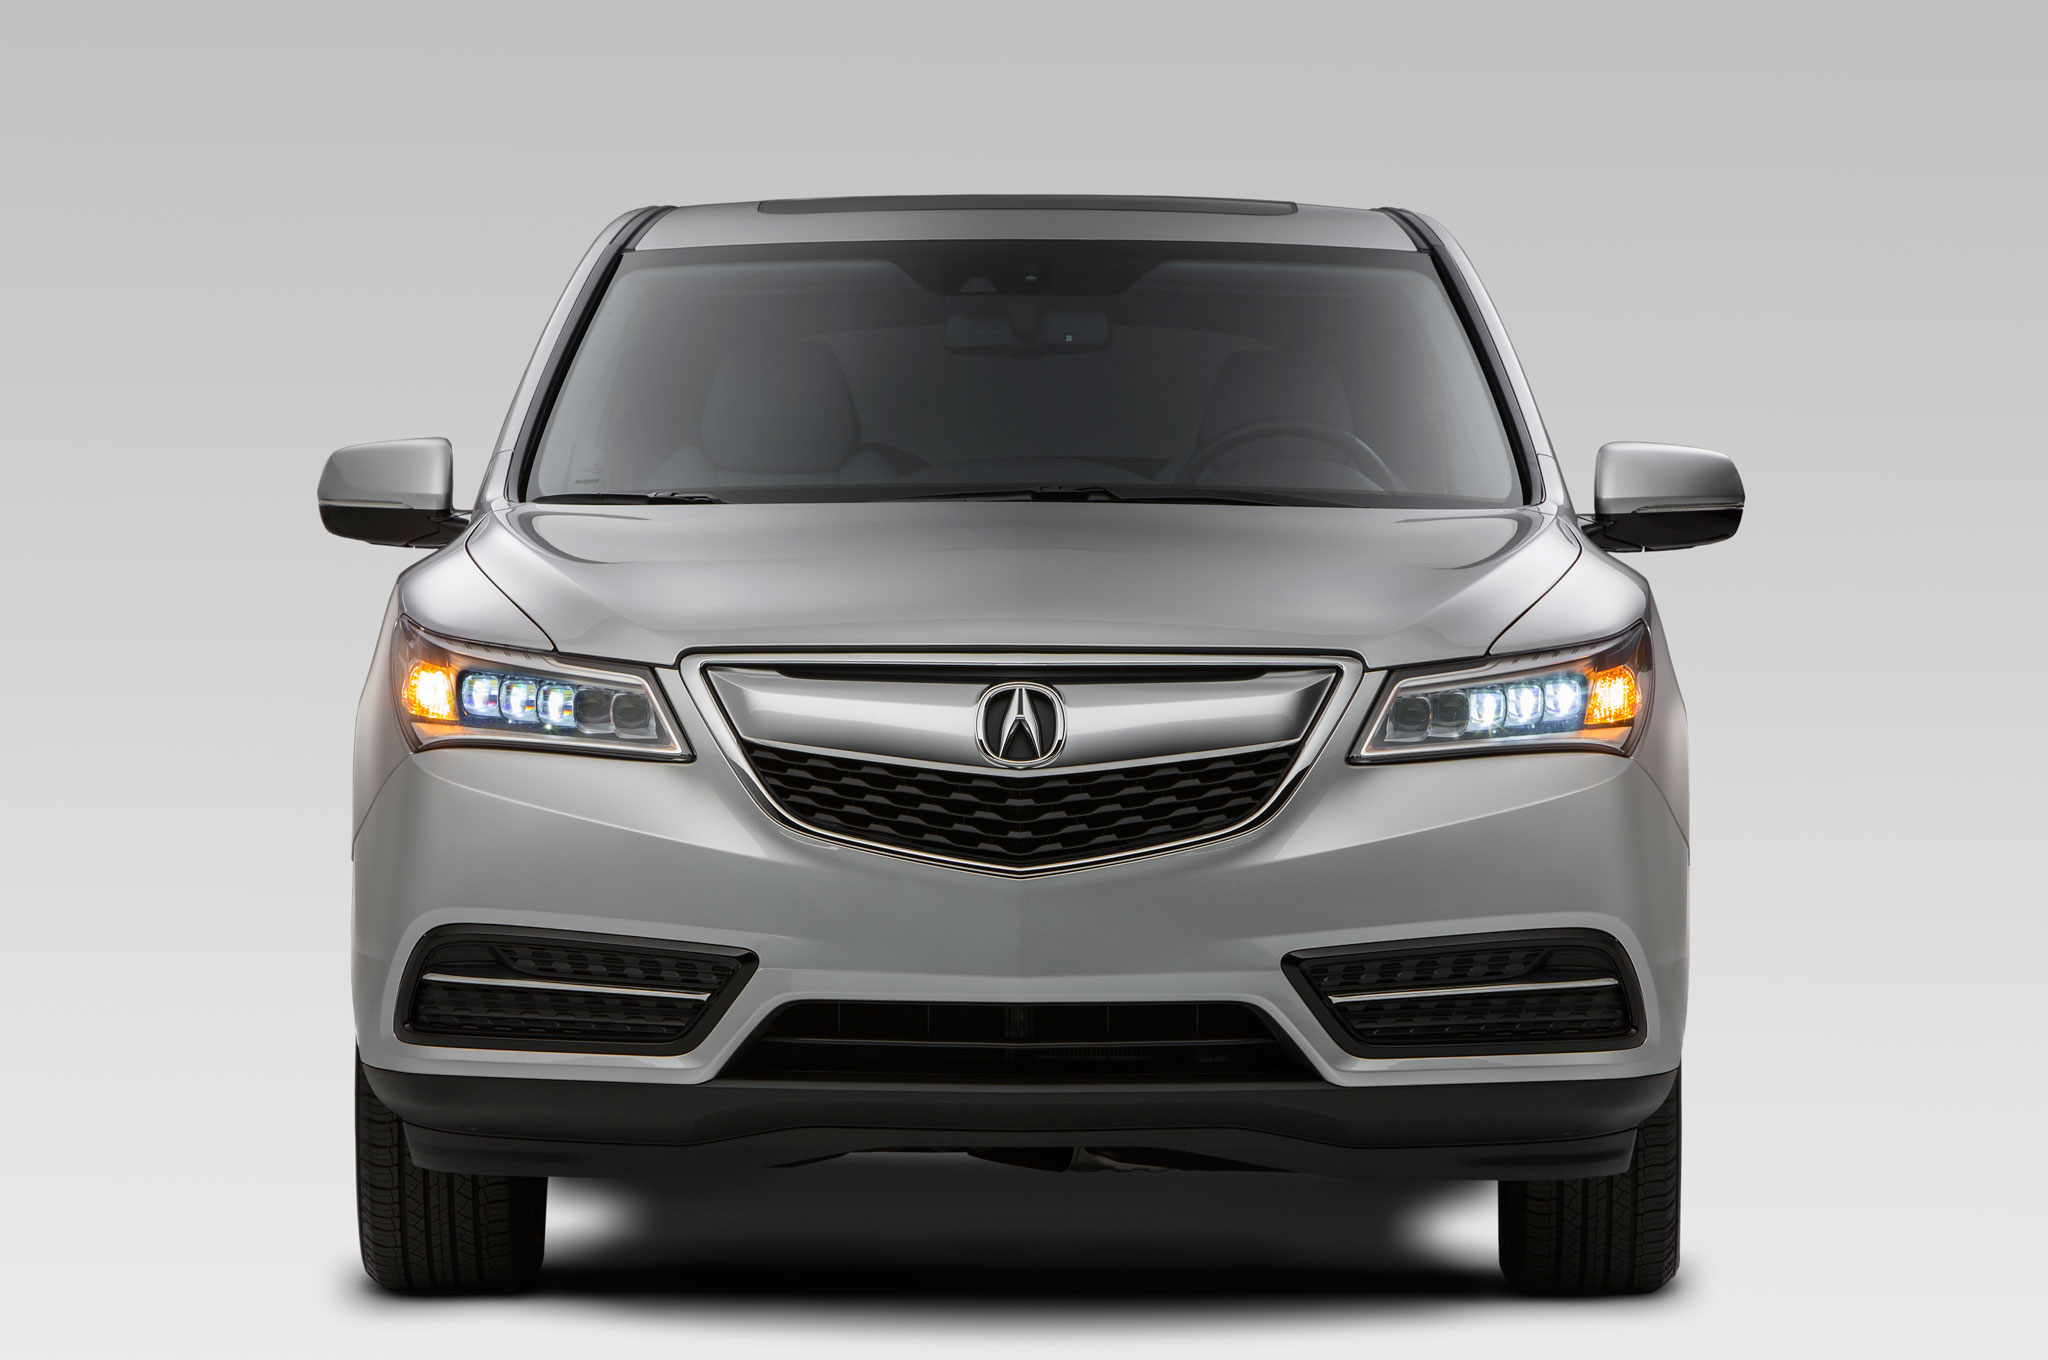 reviews trims specs price options autotrader research ca mdx photos acura